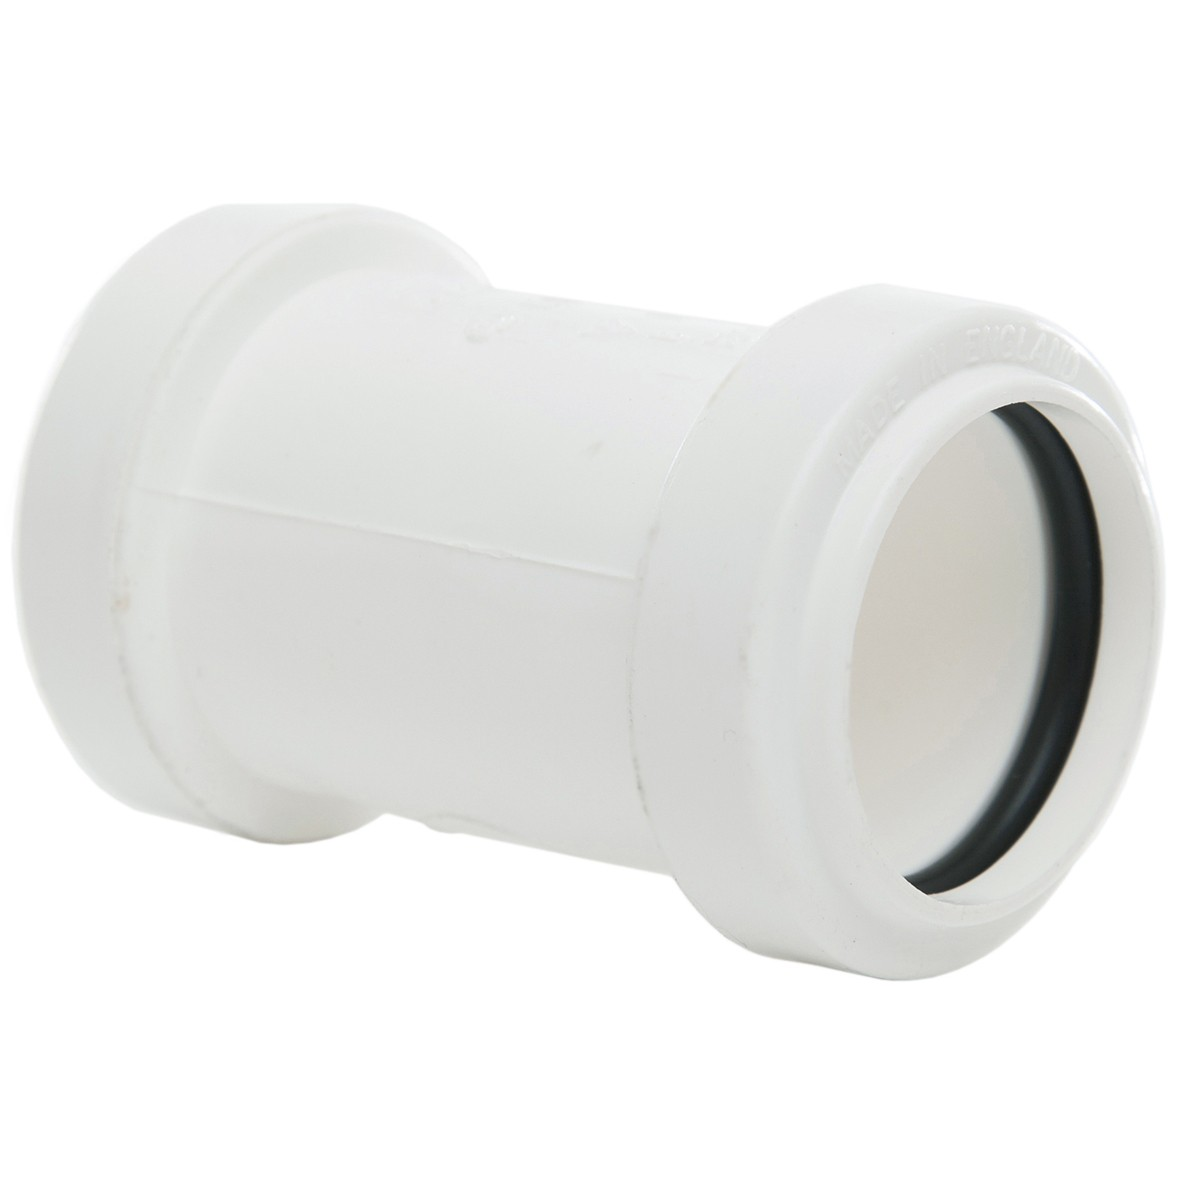 Polypipe 32mm Push Fit Waste Straight Coupler - White